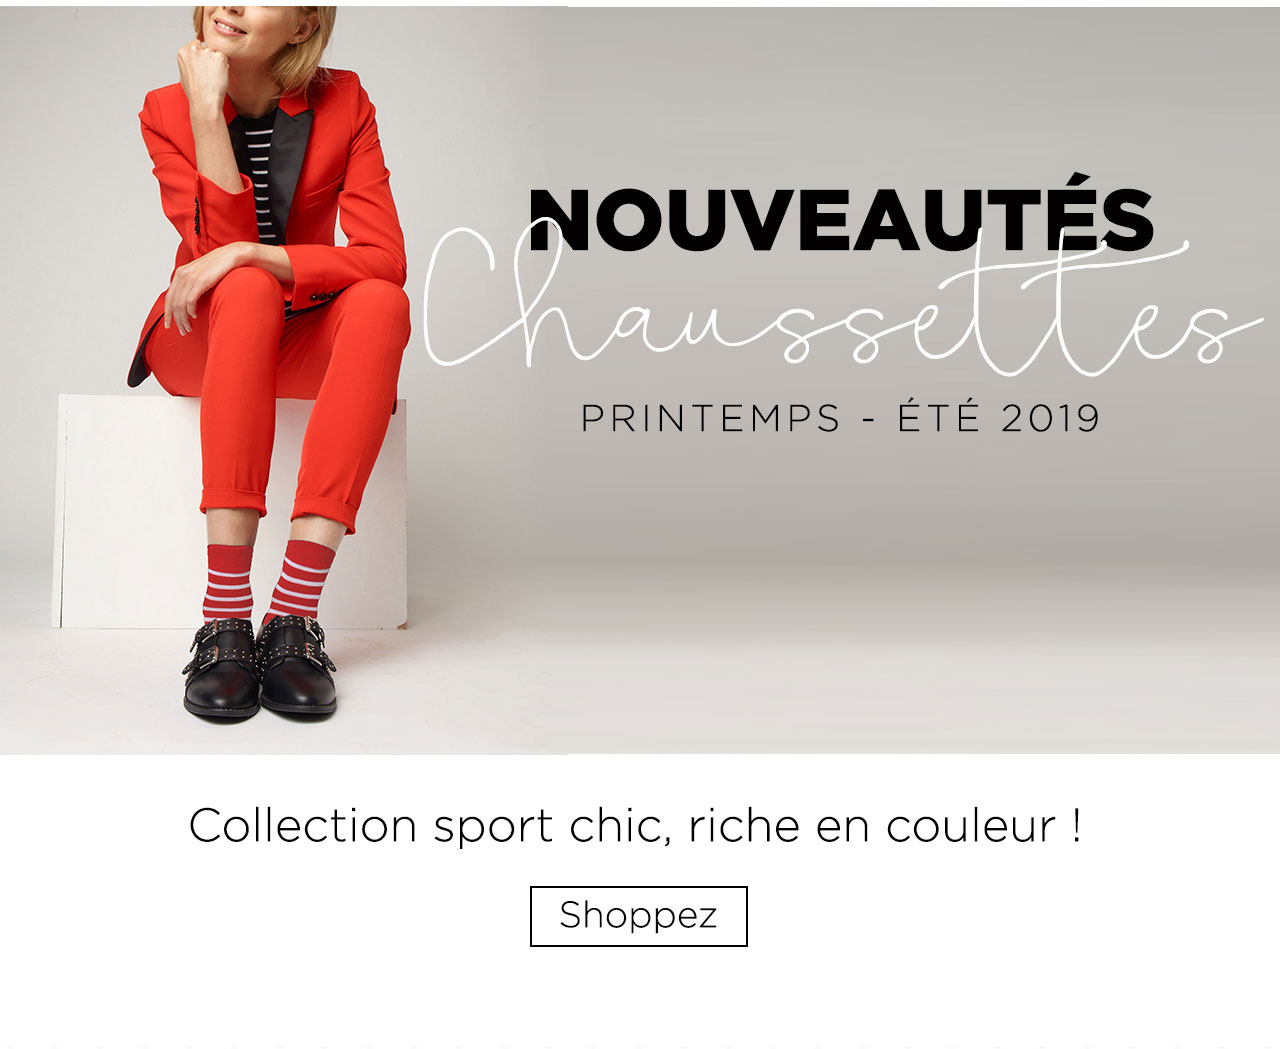 Nouvelle collection - Le Bourget